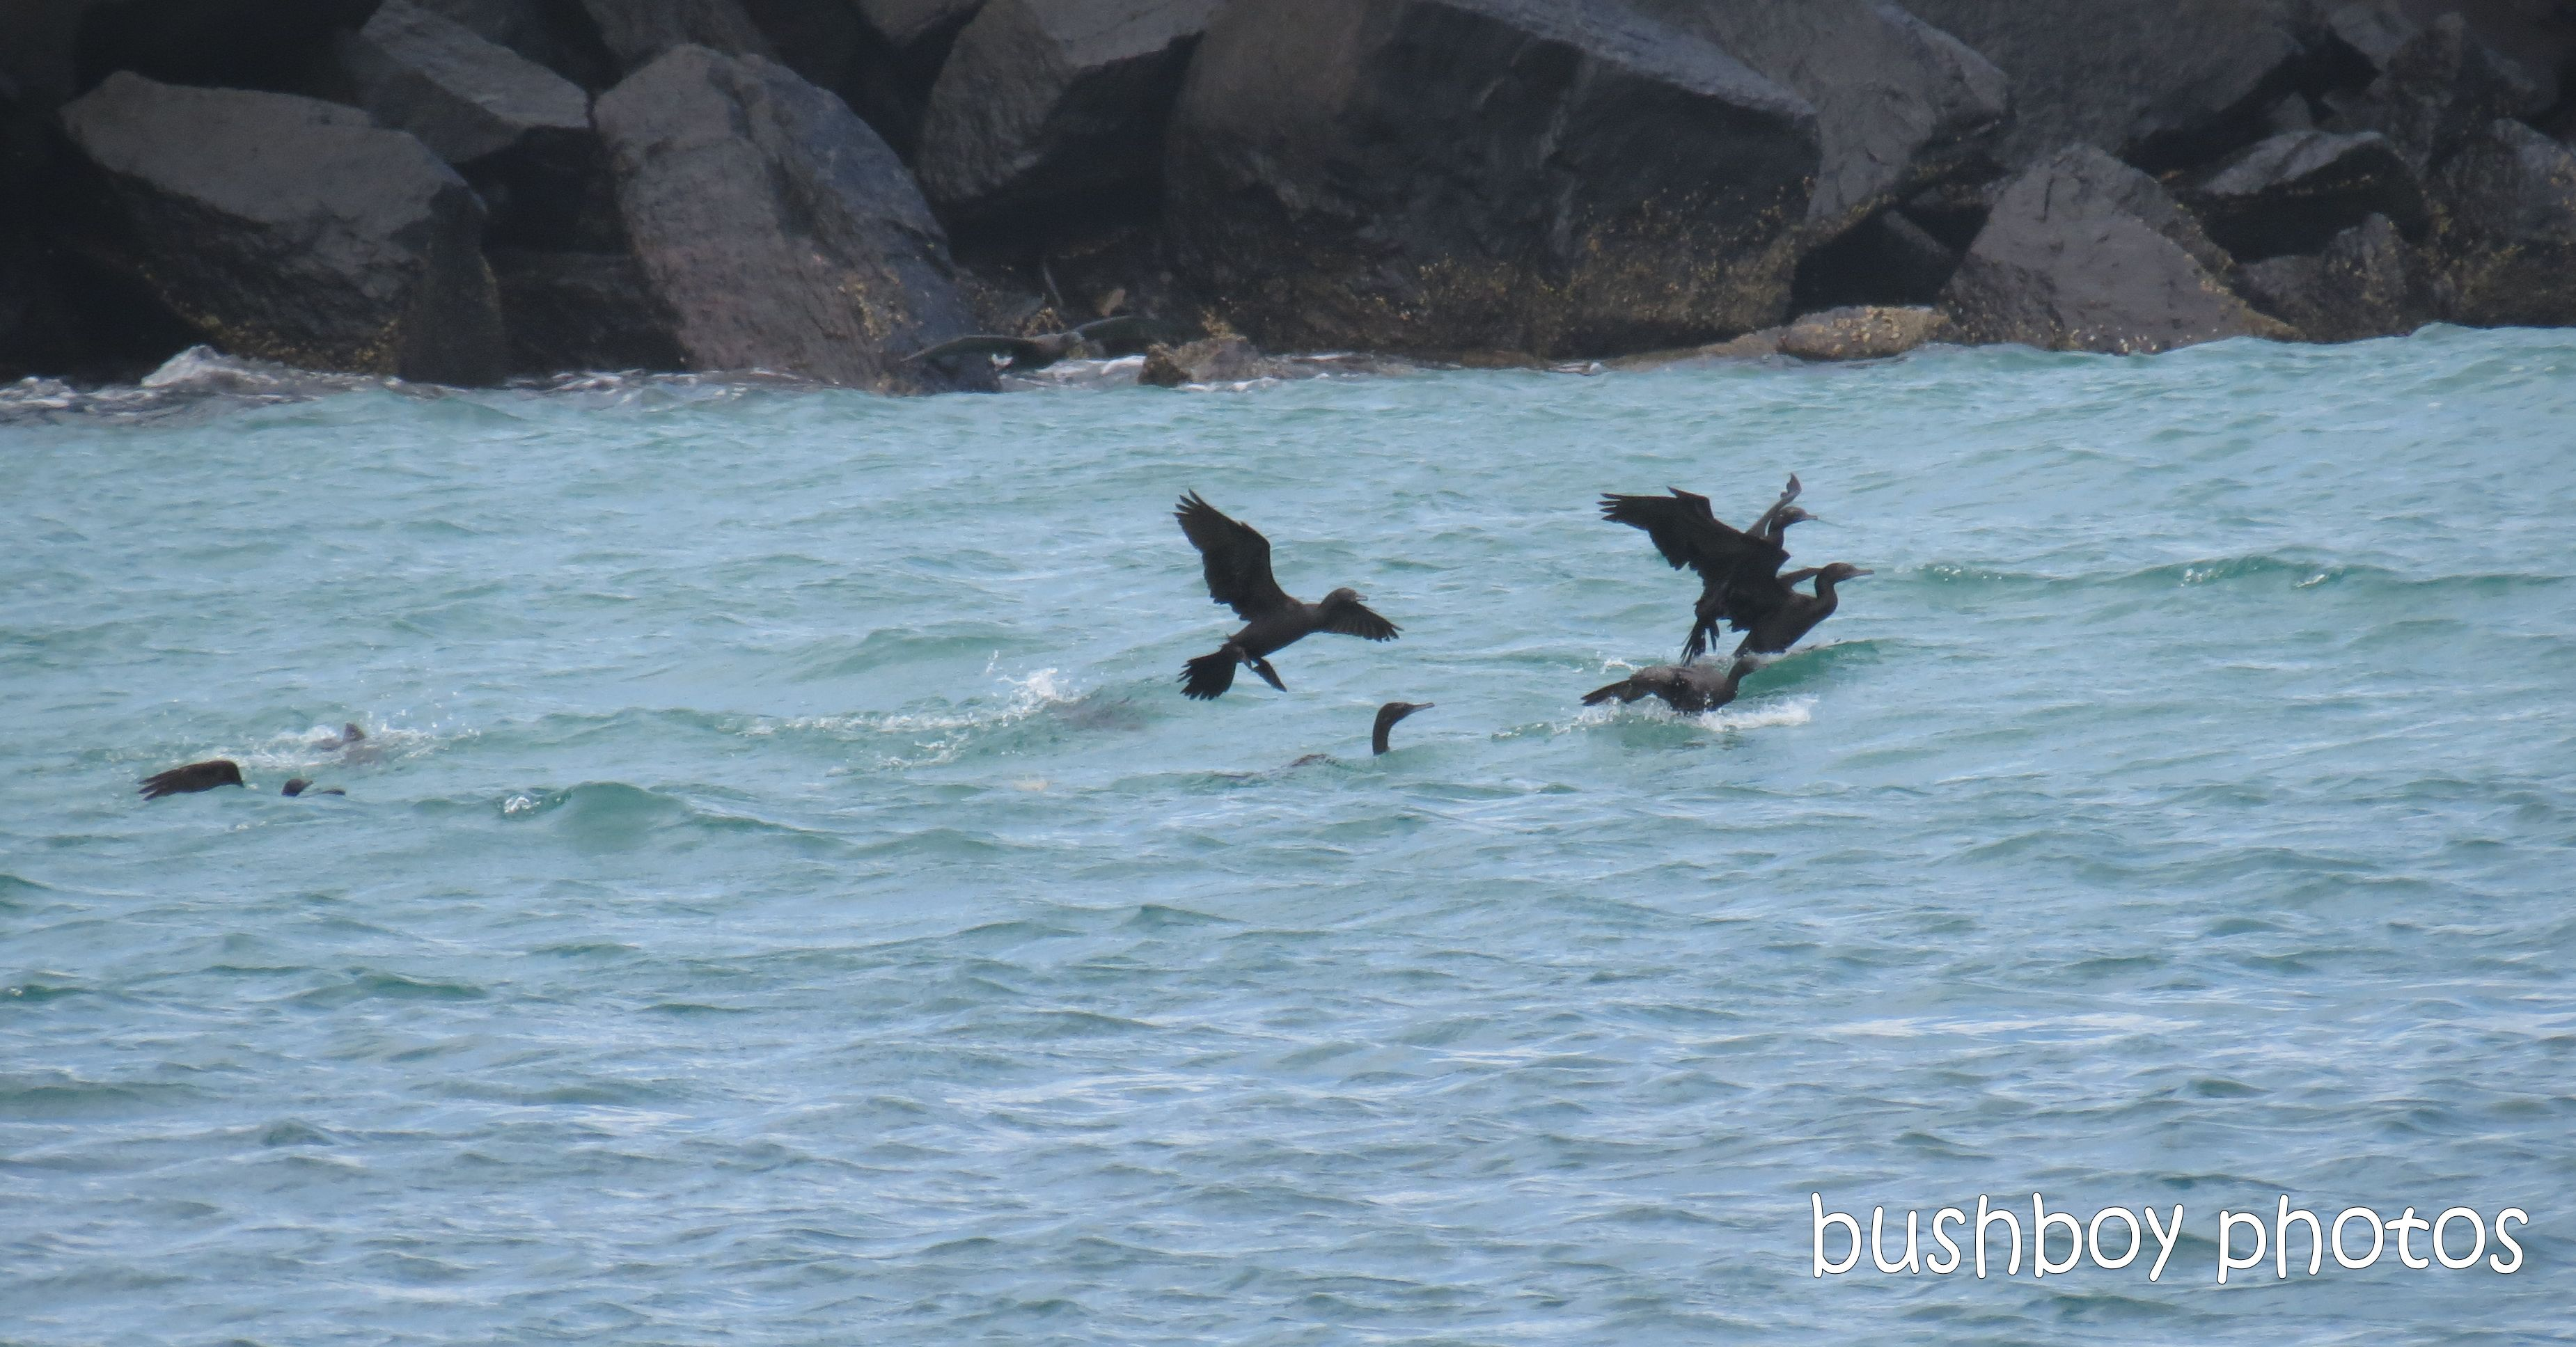 cormorants_flying_brunswick heads_named_feb 2014